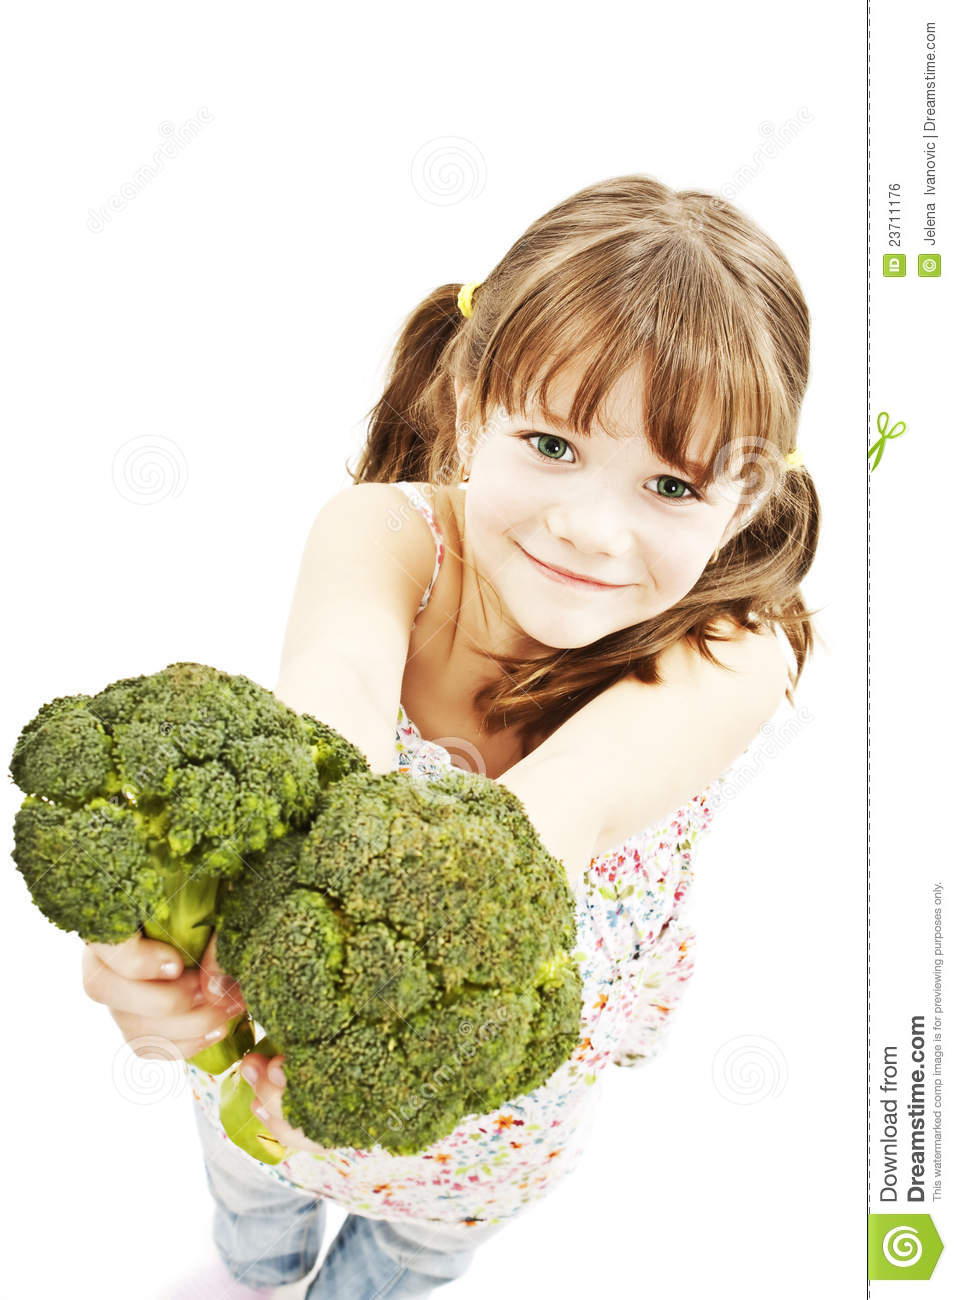 Portrait of a smiling young girl holding broccoli